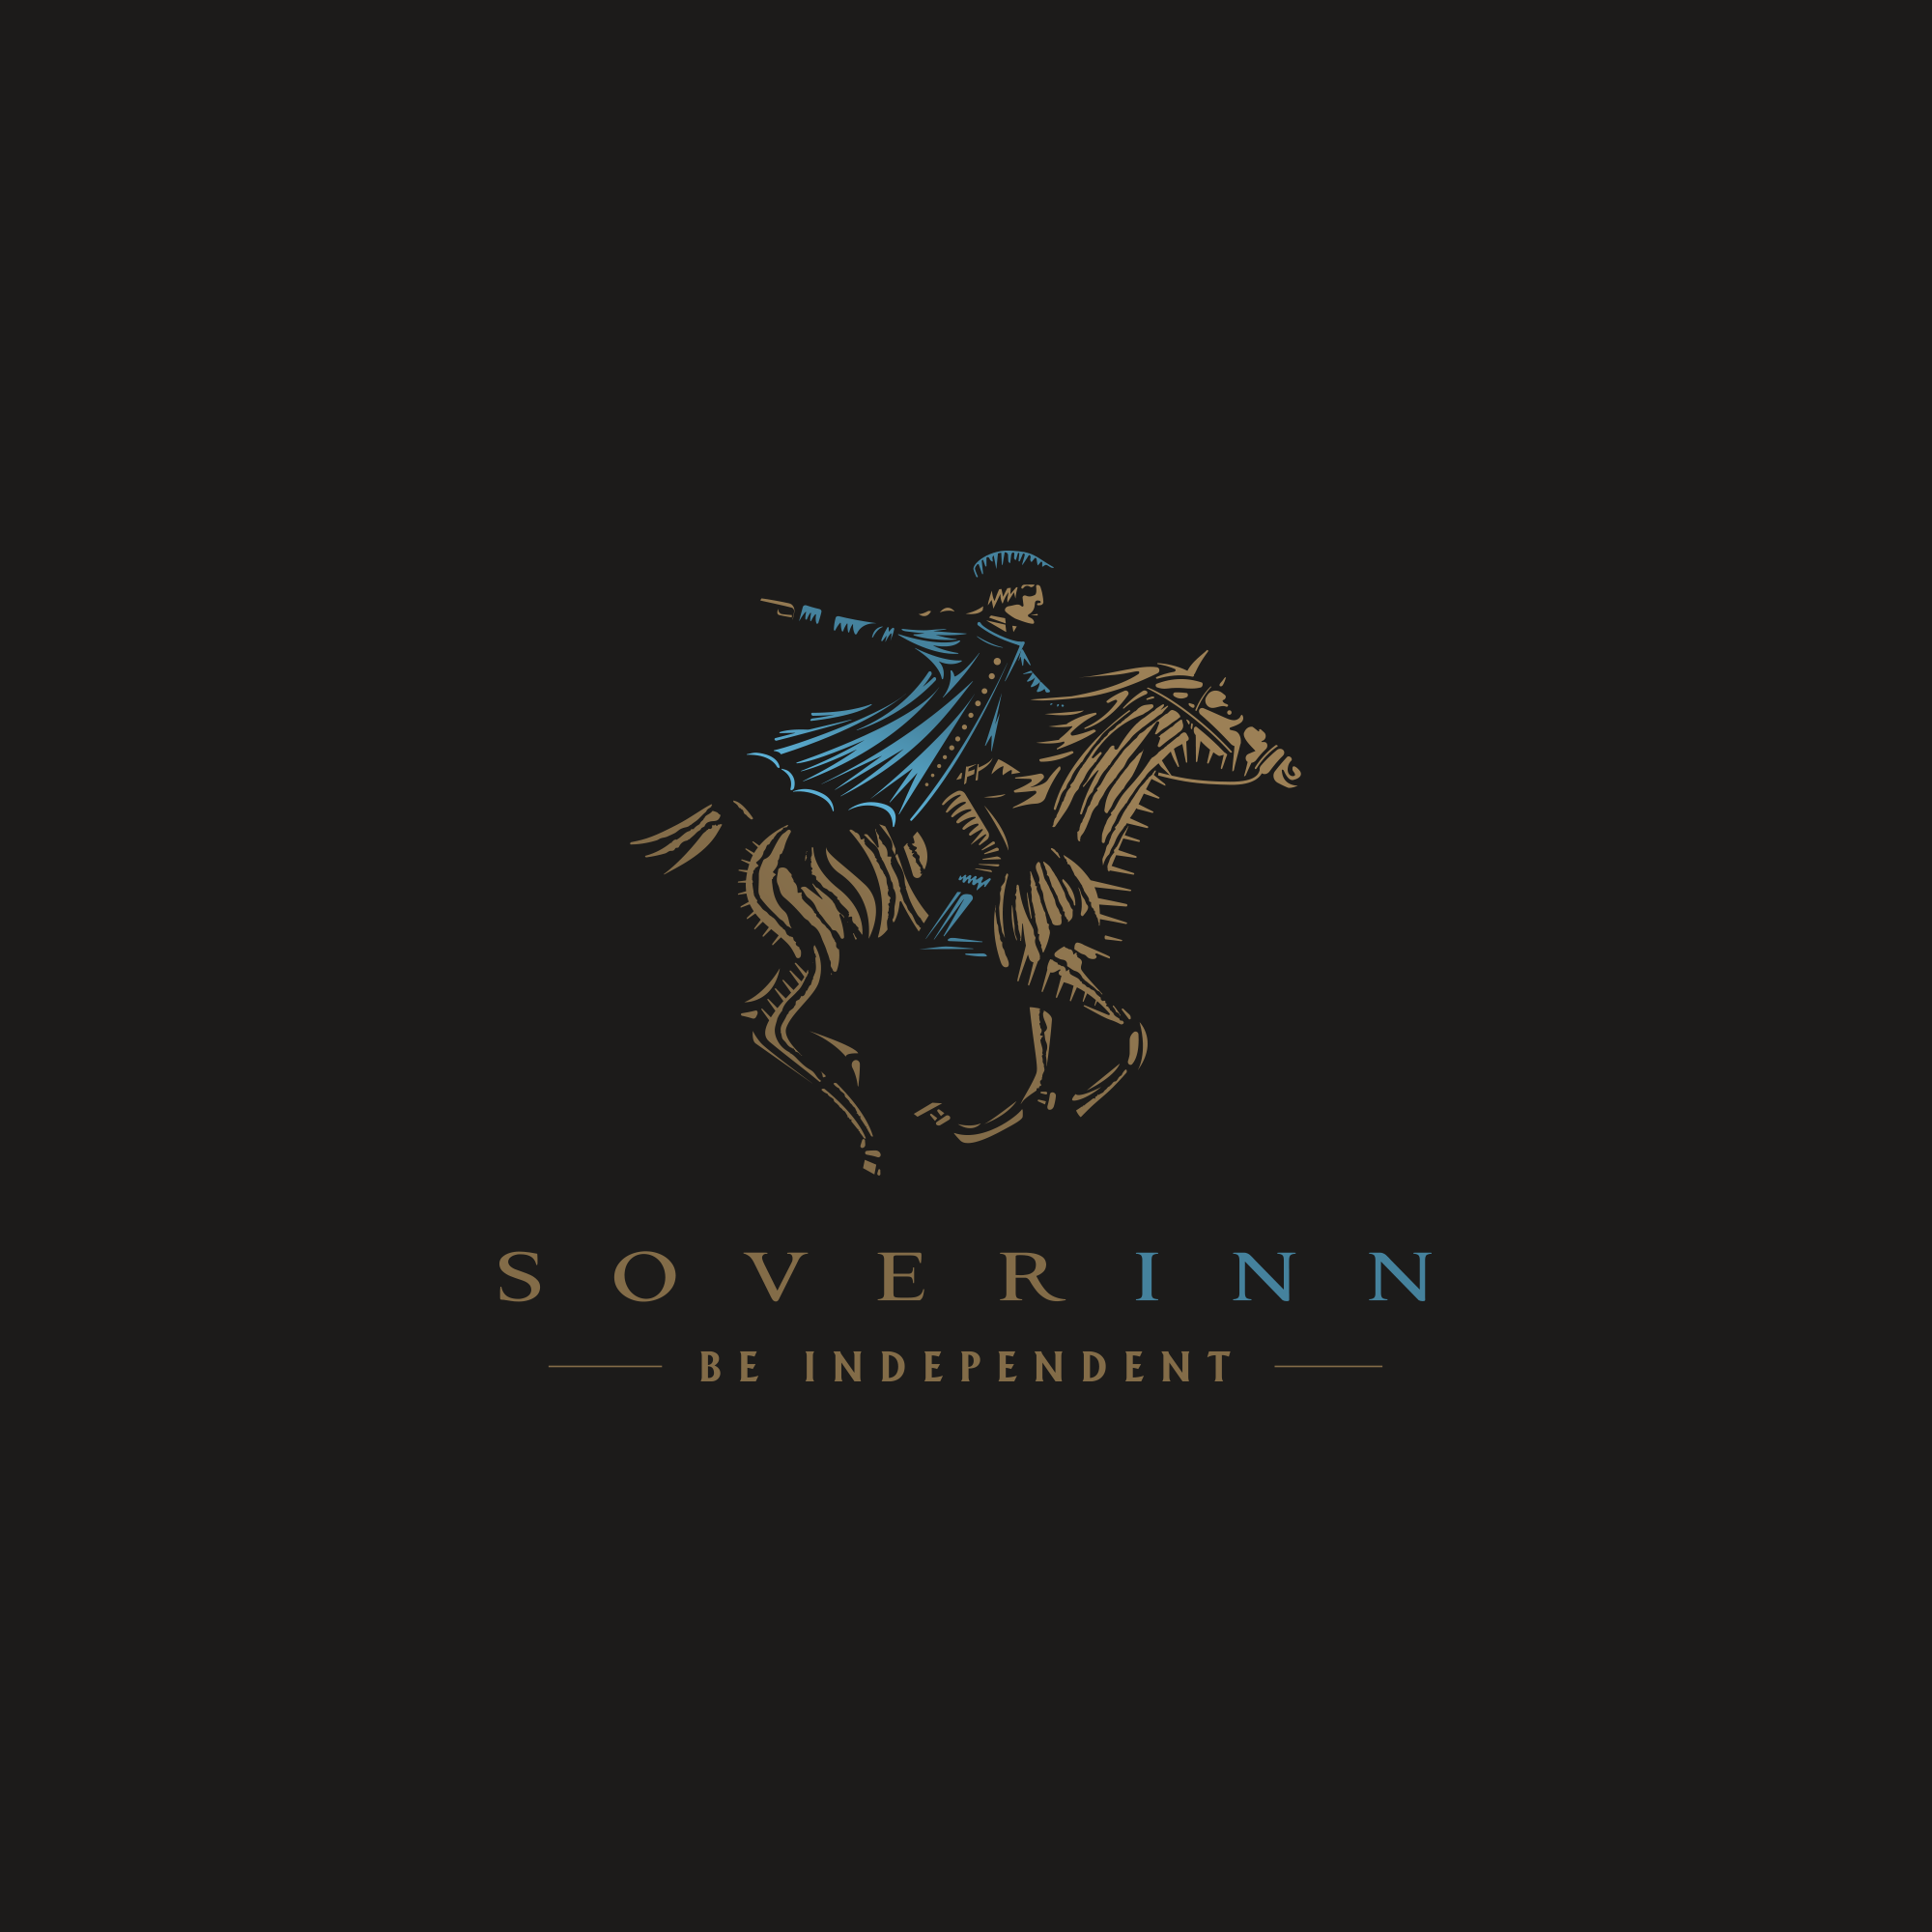 Soverinn Image